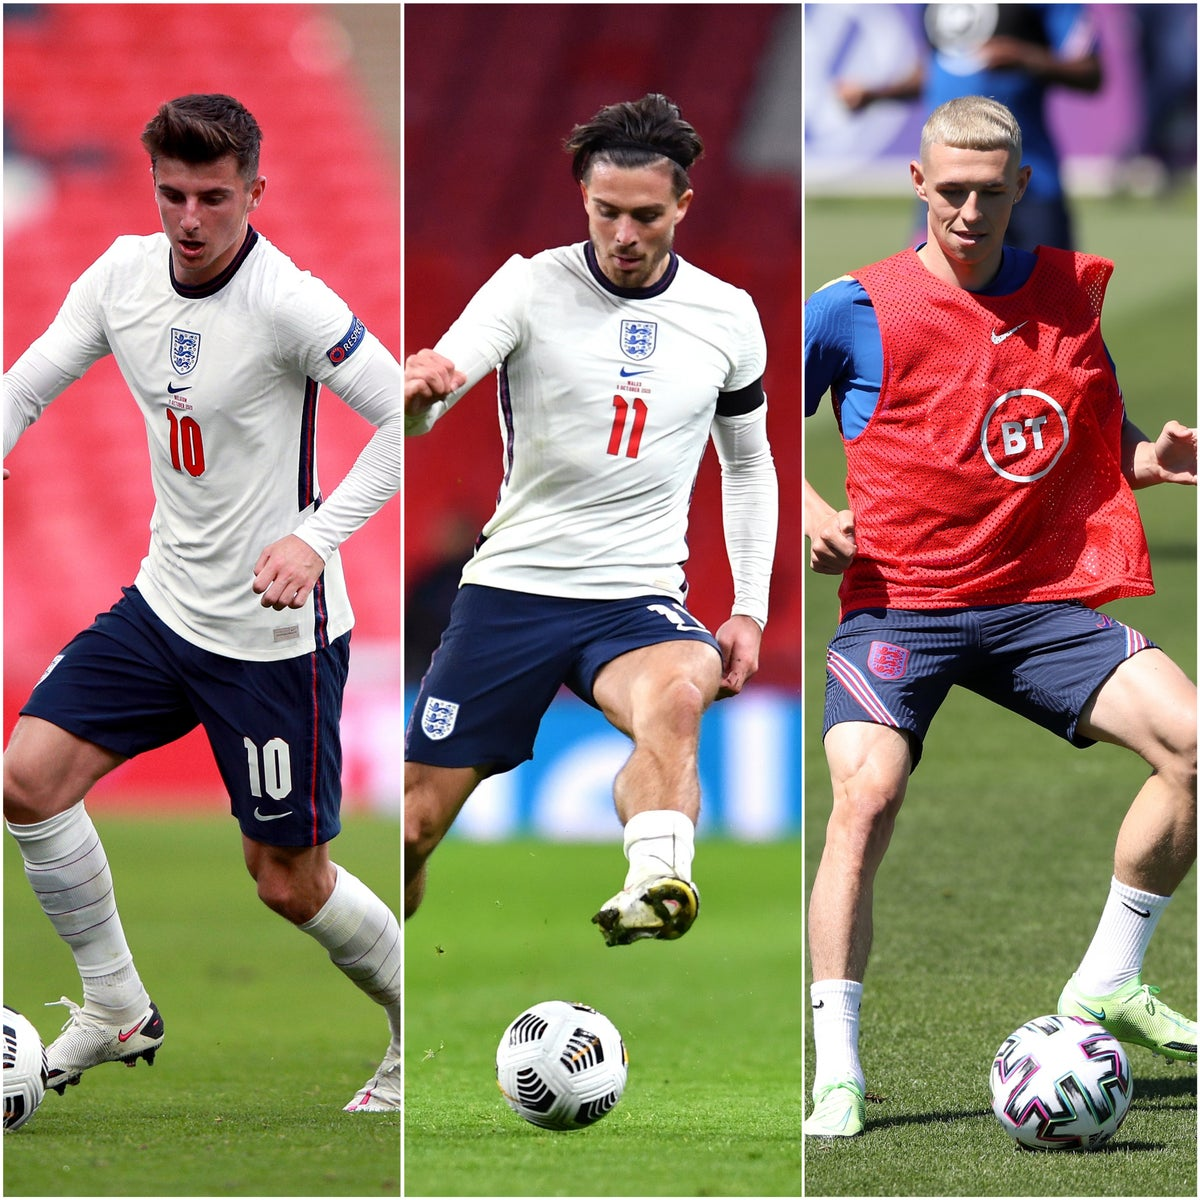 Mount, Foden and Grealish can be key England figures, Kyle Walker claims